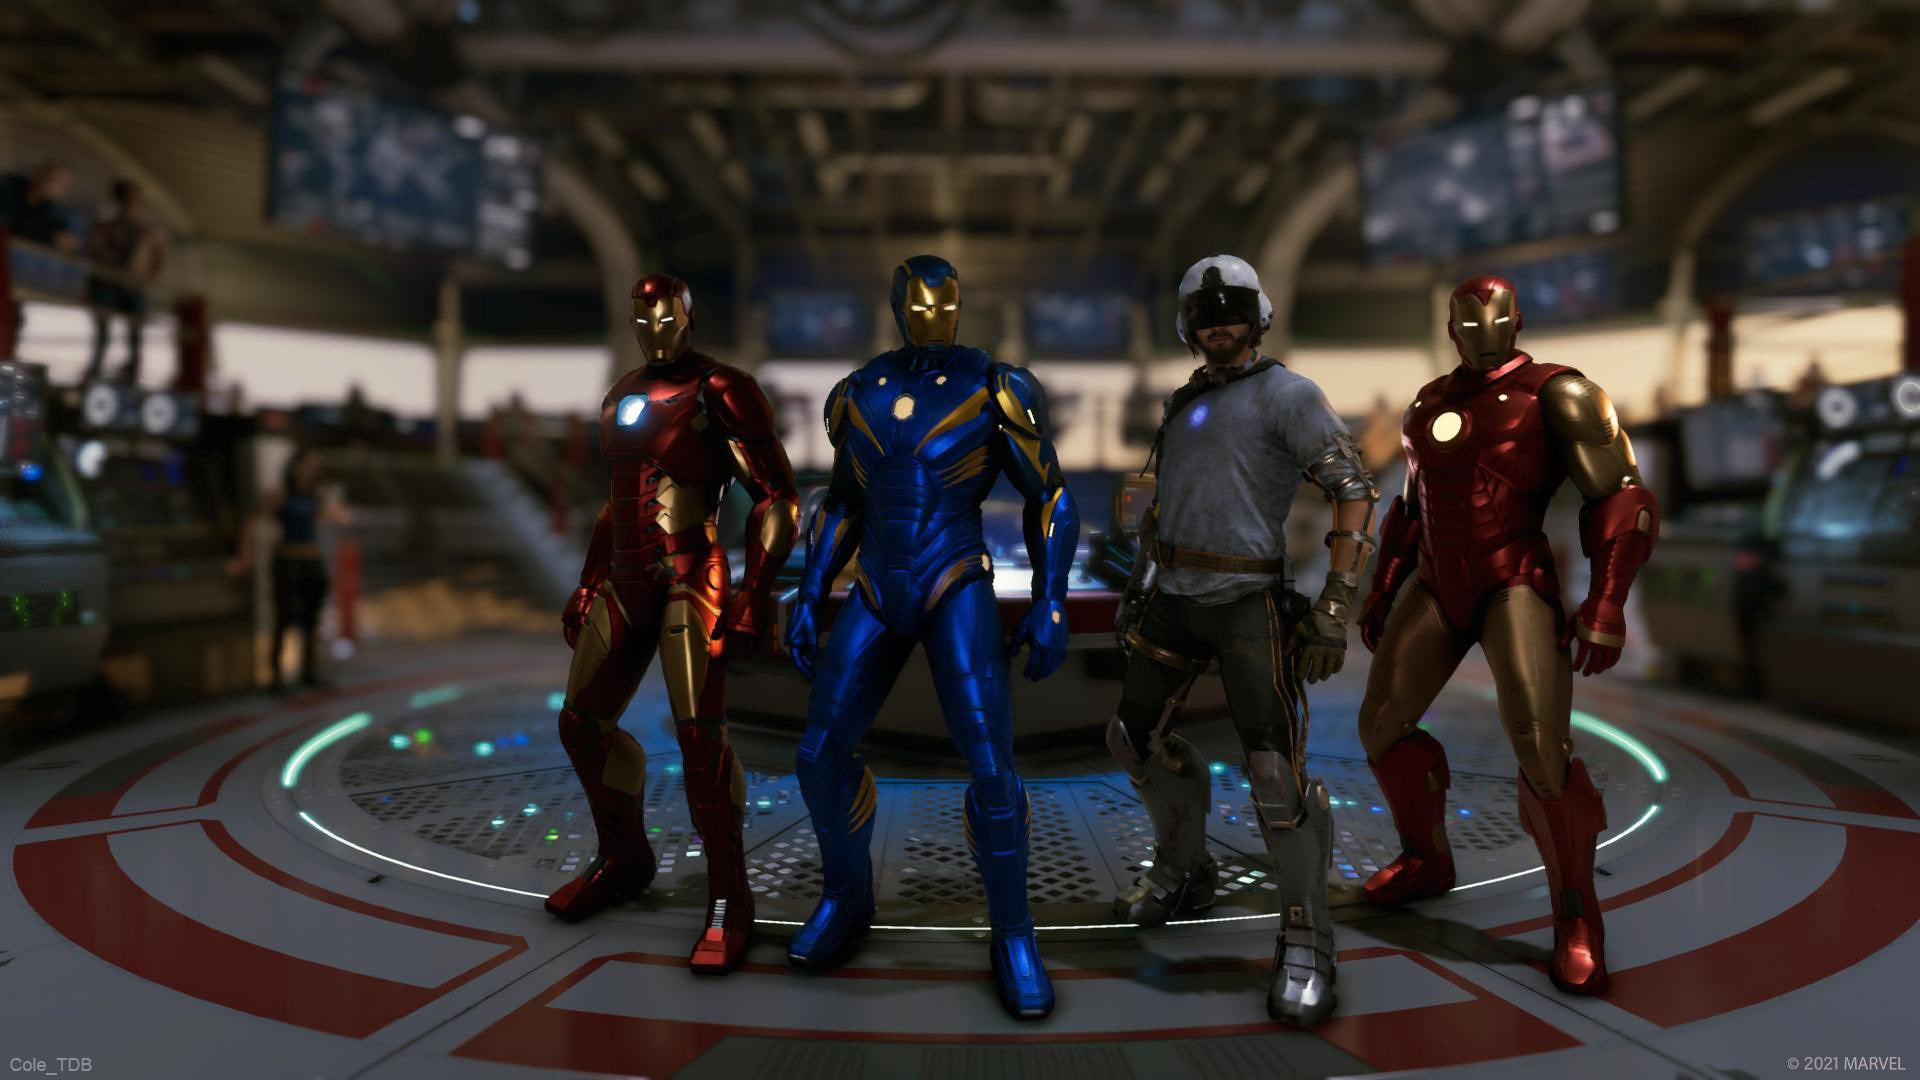 Four Iron Mans, three in shiny suits and one in the prototype build from the Reassemble Campaign, stand in front of the War Table in the Helicarrier.